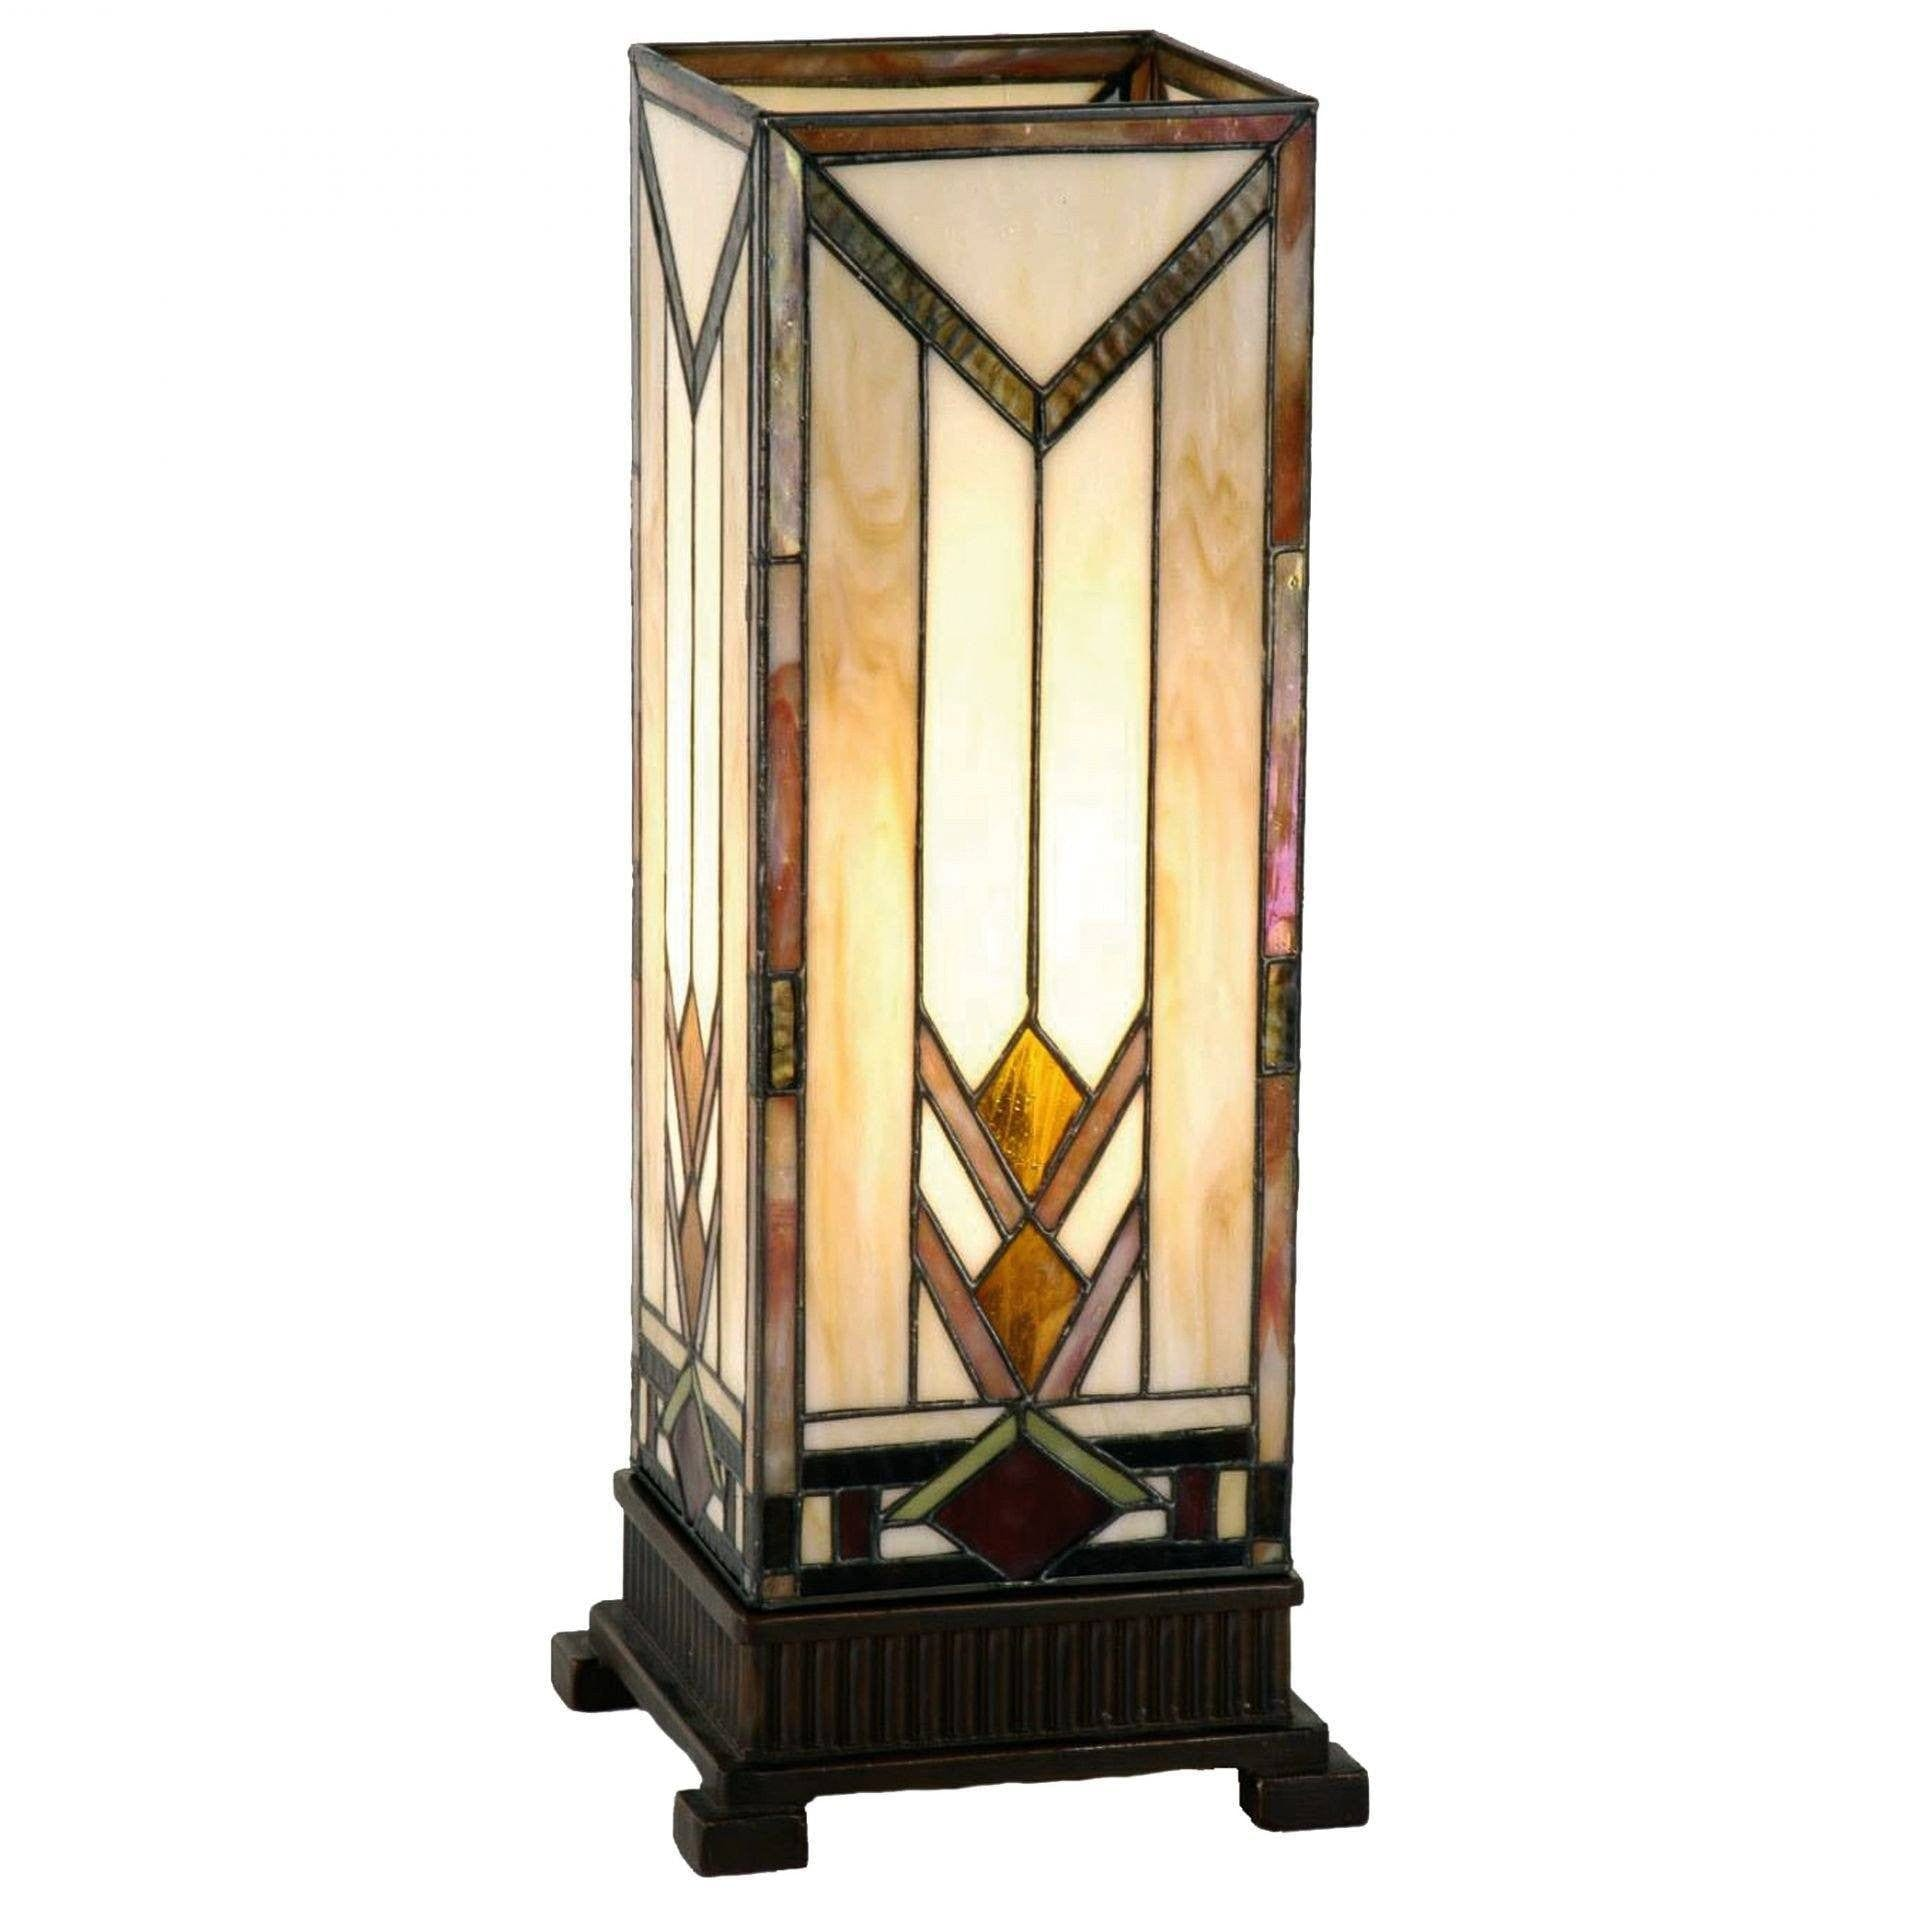 Tiffany Square Table Lamps - Prairie Tiffany Large Square Table Lamp